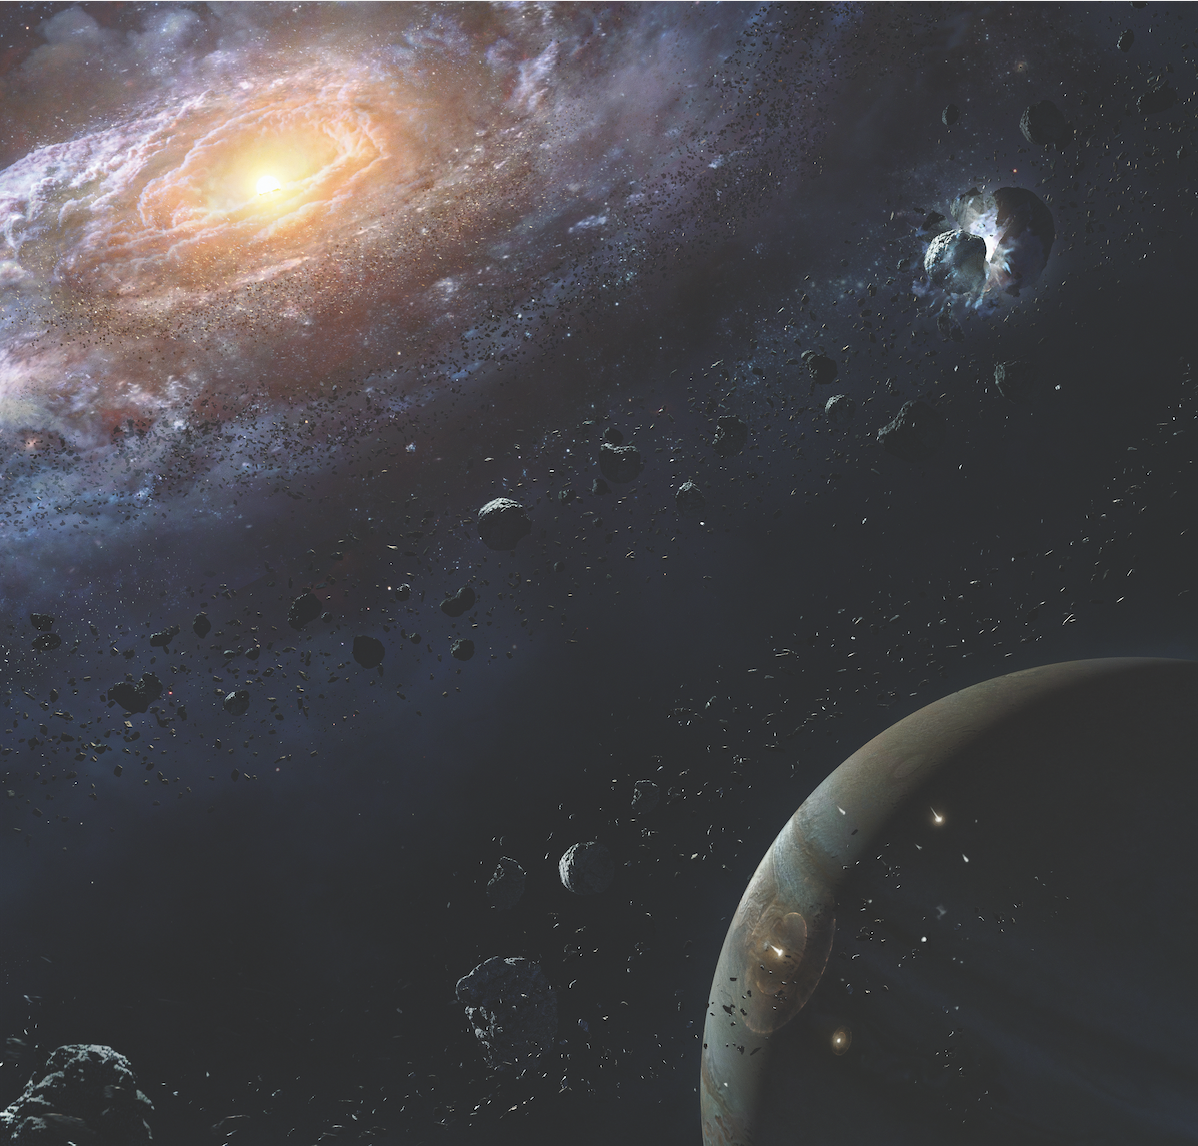 NATIONAL GEOGRAPHIC REMAPS SOLAR SYSTEM THROUGH A BRAND-NEW DIGITAL INTERACTIVE EXPERIENCE